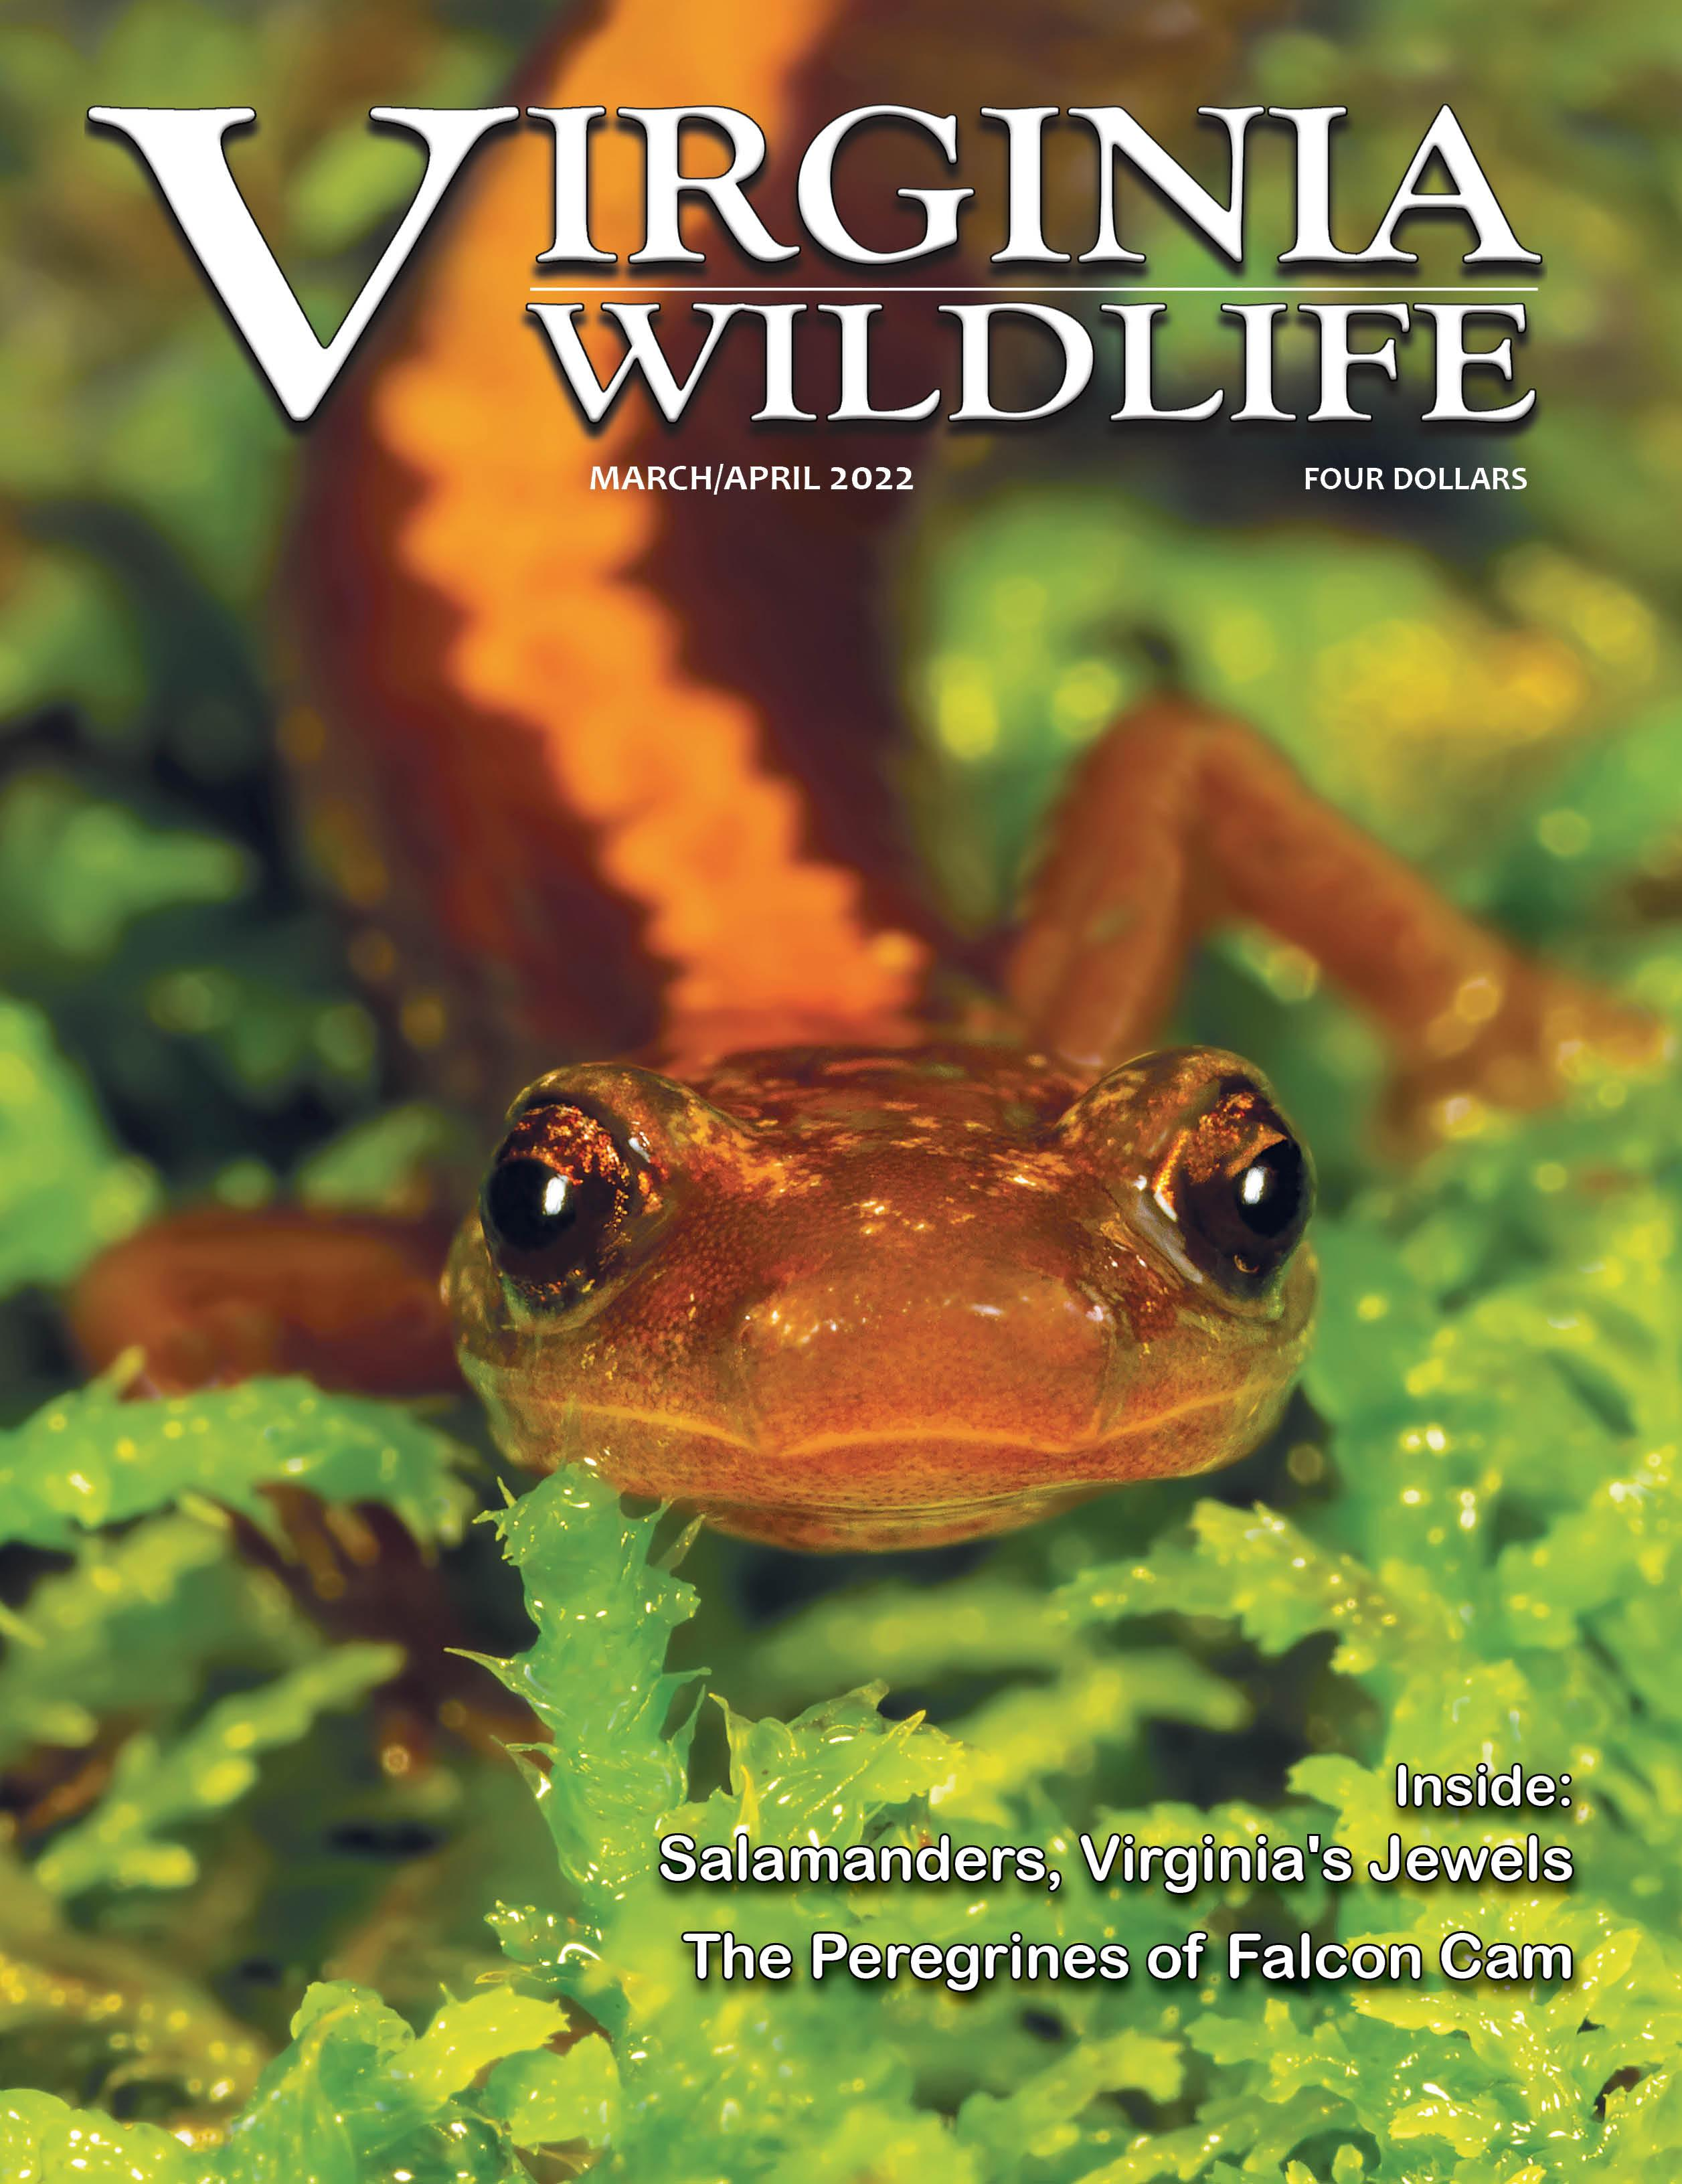 Virginia Wildlife Magazine